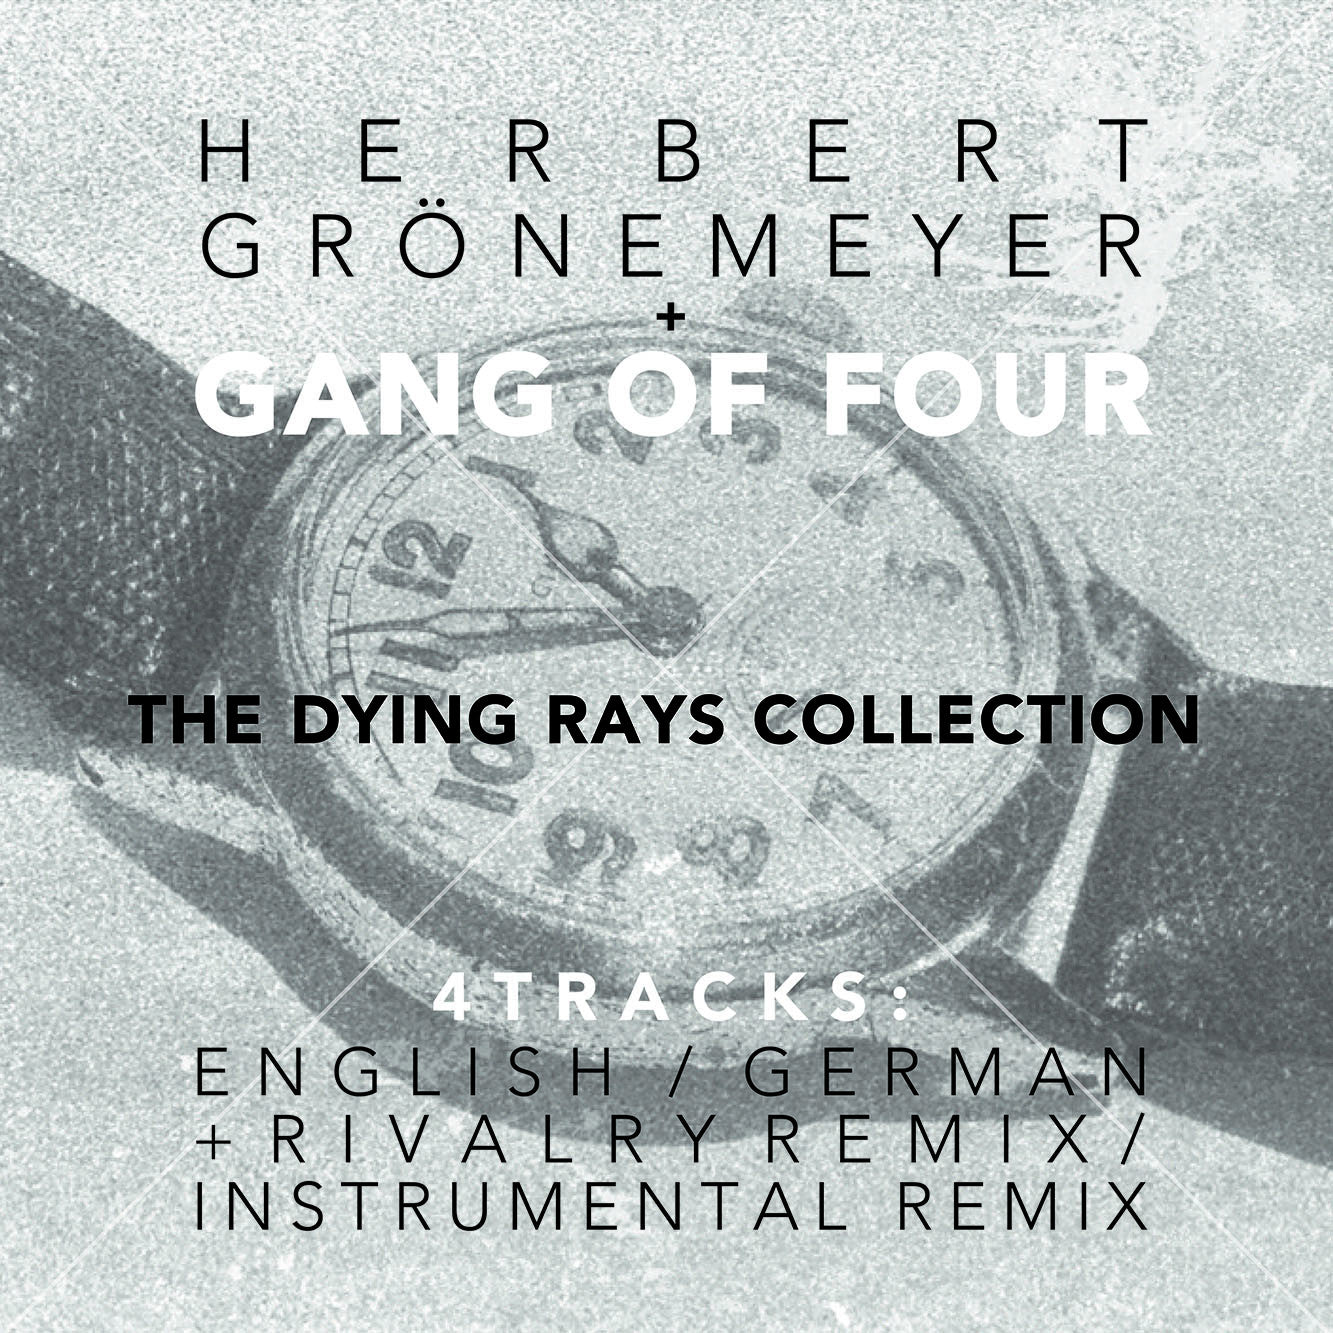 Gang of Four & Herbert Grönemeyer - The Dying Rays Collection / Die Staubkorn-Sammlung - Unearthed Sounds